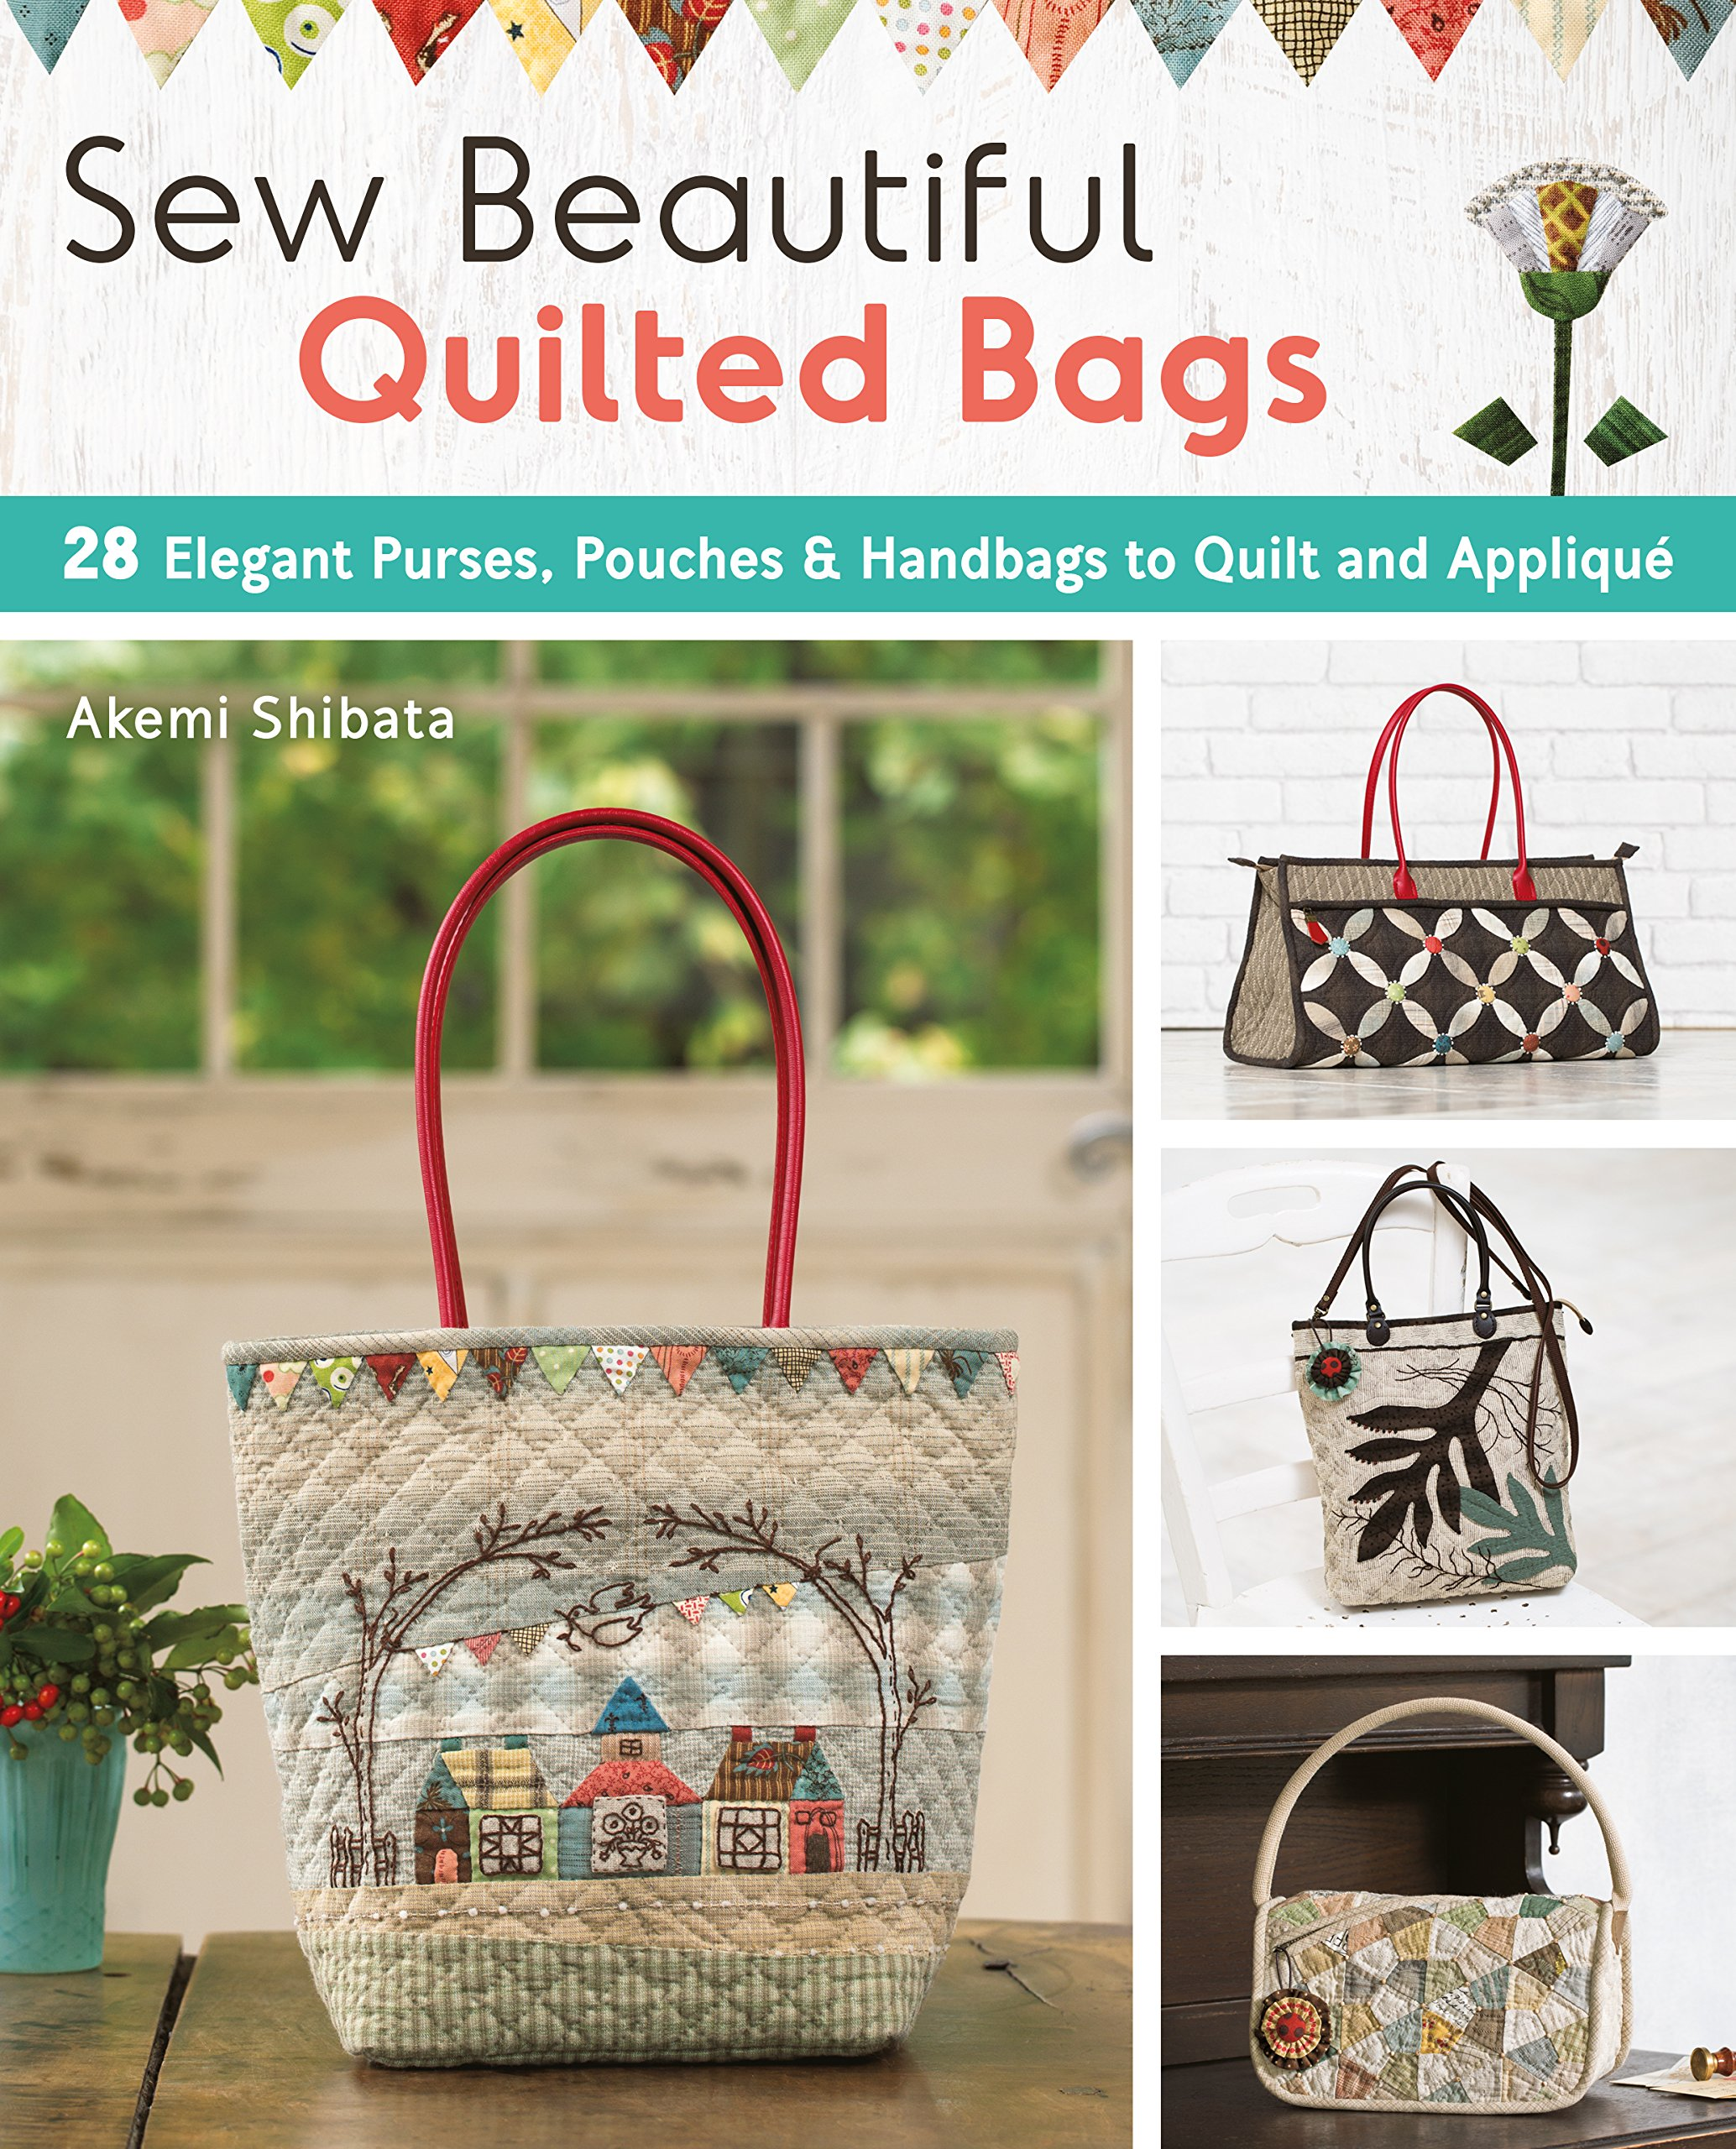 Download Sew Beautiful Quilted Bags: 28 Elegant Purses, Pouches & Handbags to Quilt and Appliqué PDF